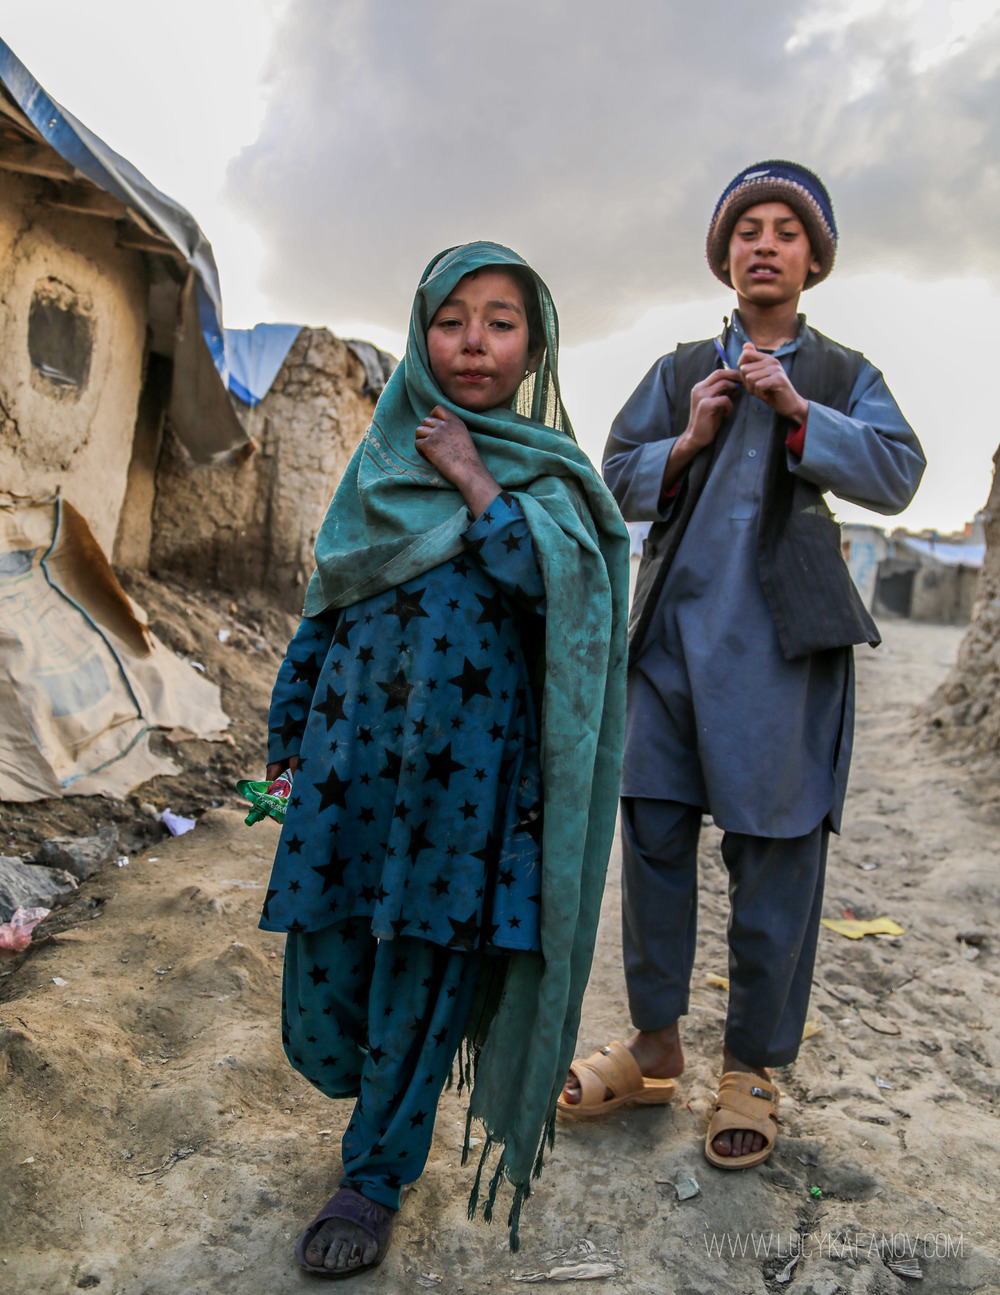 Siblings, displaced by war in their native Helmand Province.